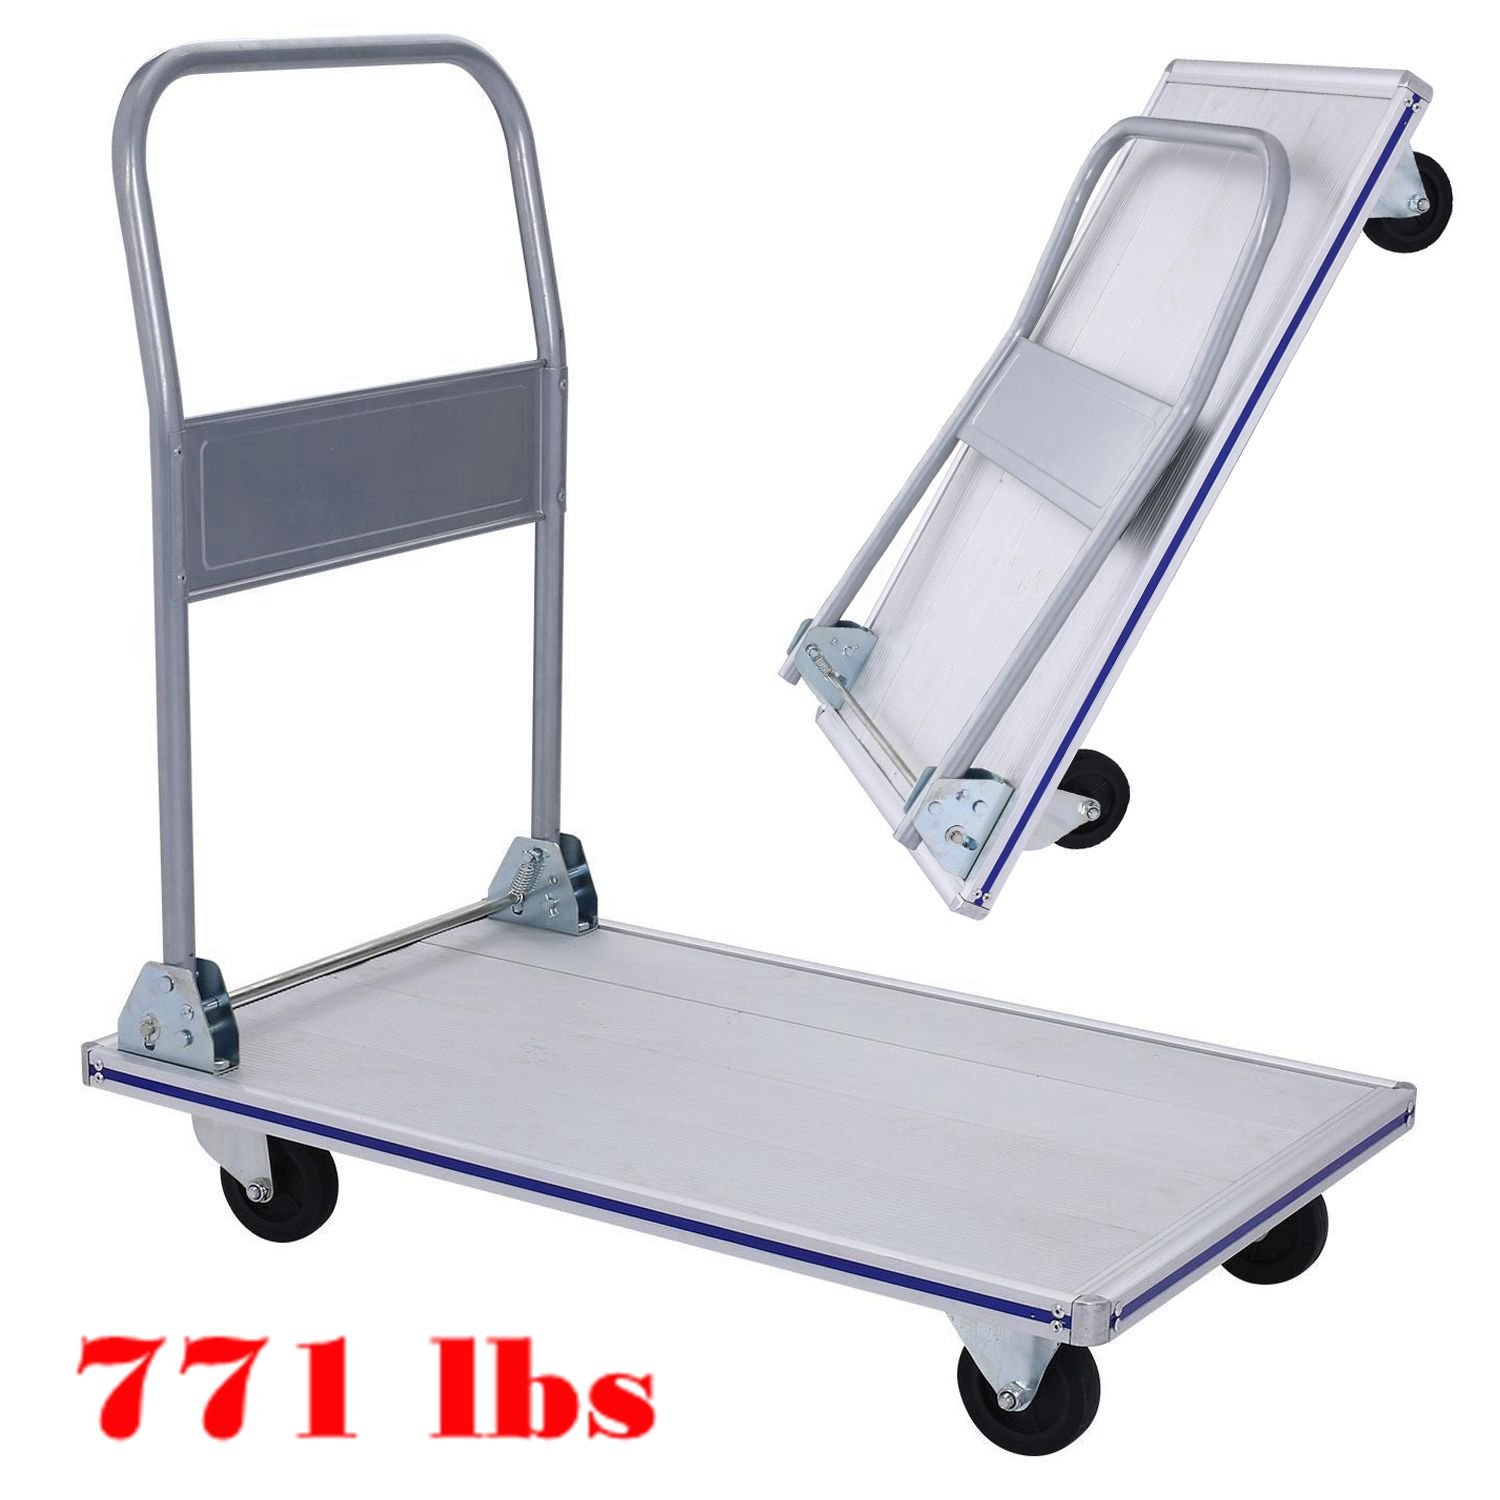 Hindom 771 Lbs Folding Platform Truck, Heavy Duty Flatbed Cart with 4 Wheels, Aluminum Push Moving Dolly or Hand Truck – Office or Home Cart (US STOCK)